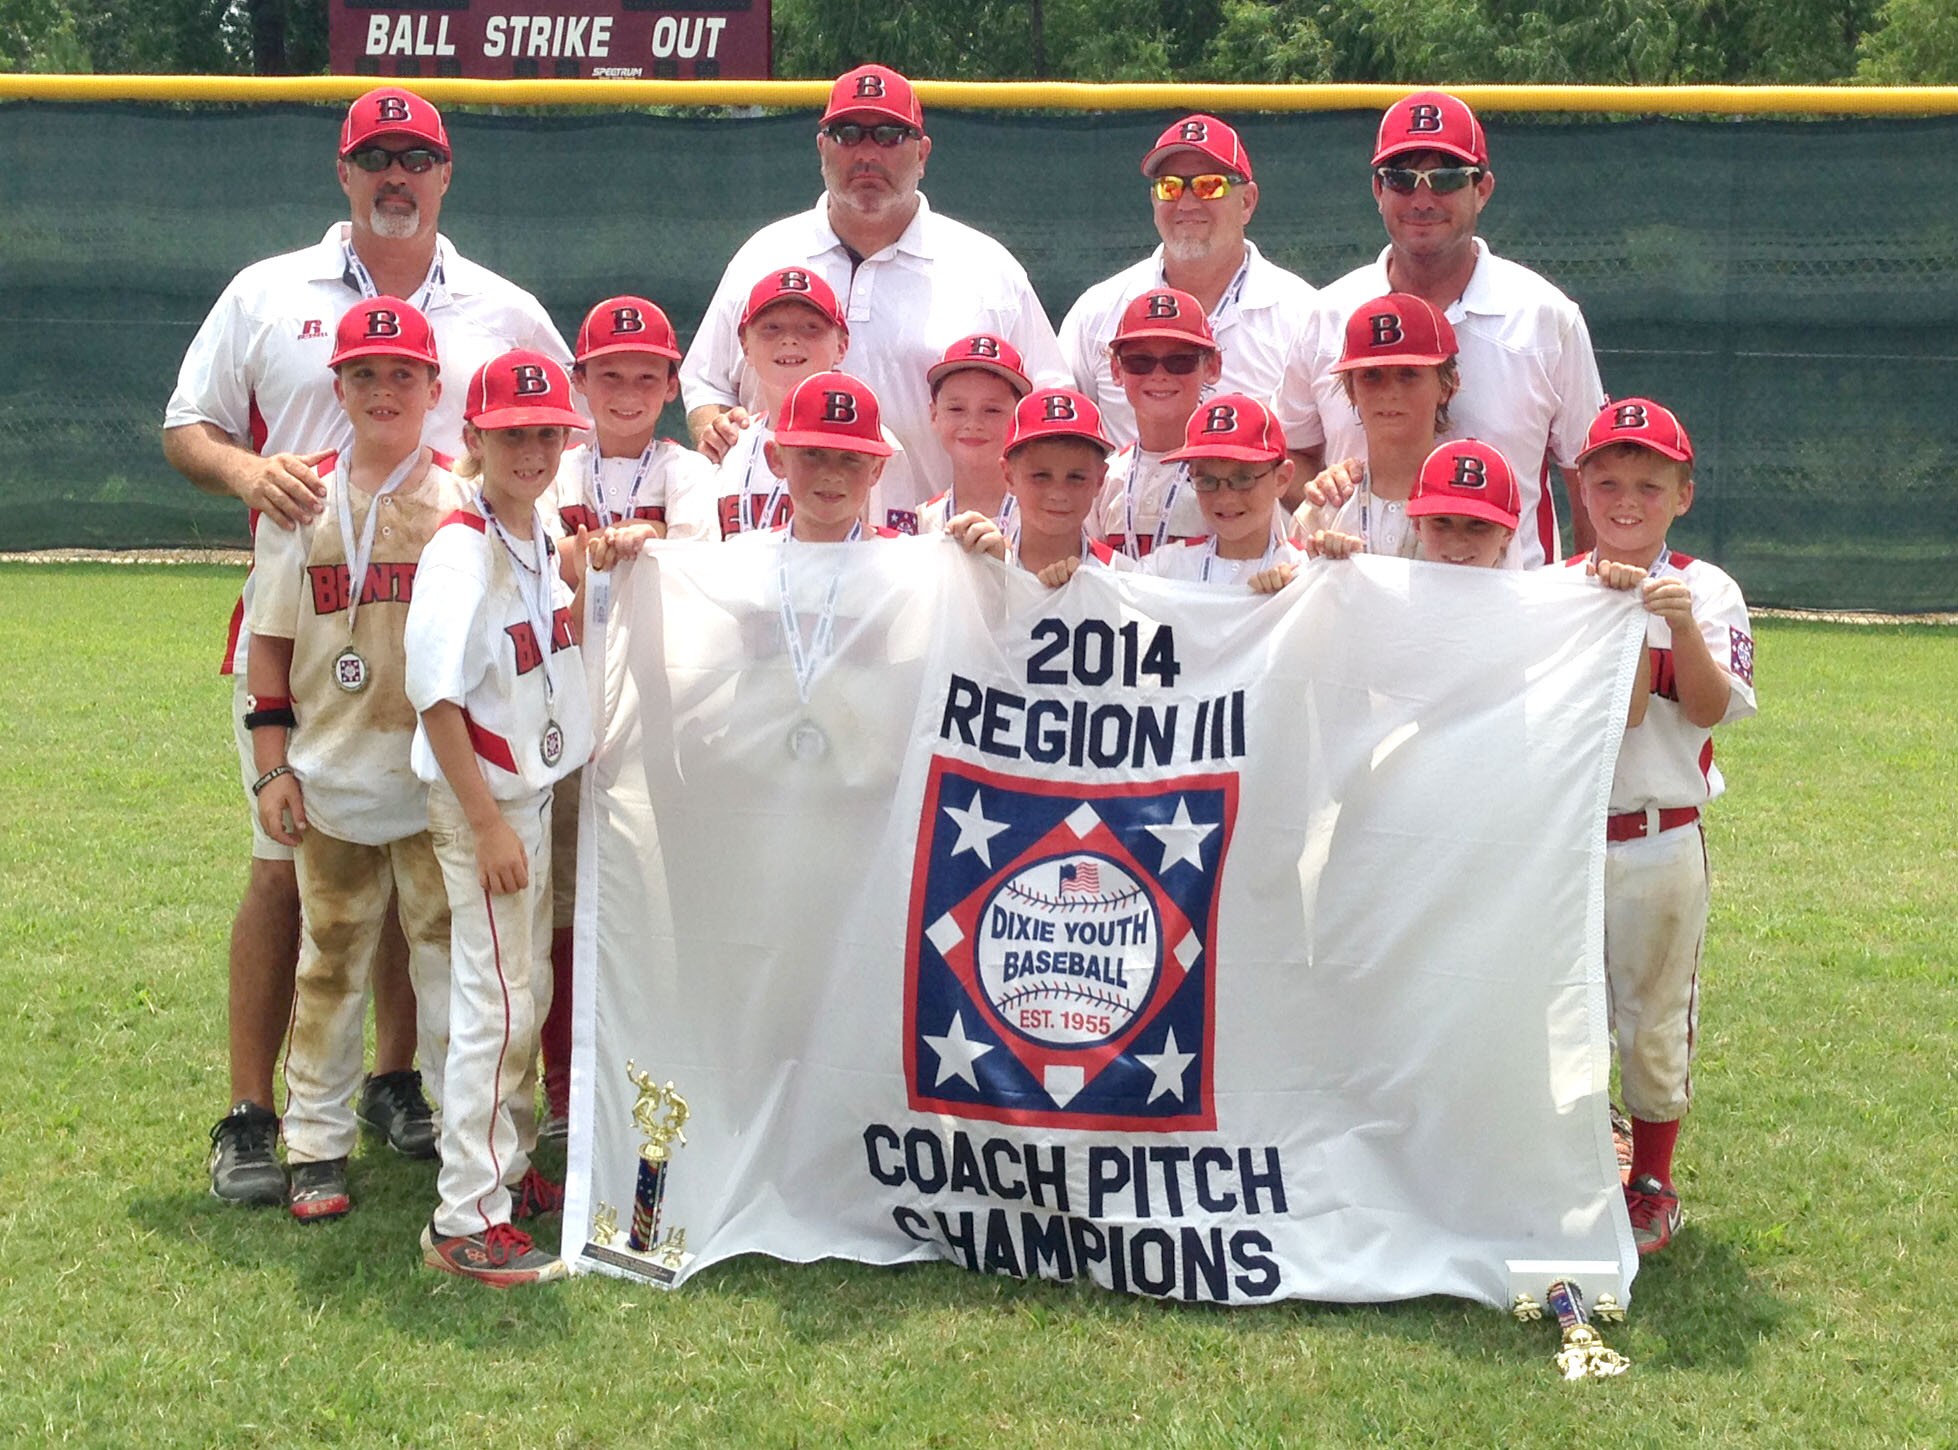 Courtesy Photo/ The Benton Nationals All-Stars pose for a team photo after winning the Dixie 7-8 Coach Pitch Region III World Series title Monday in Longview, Texas.